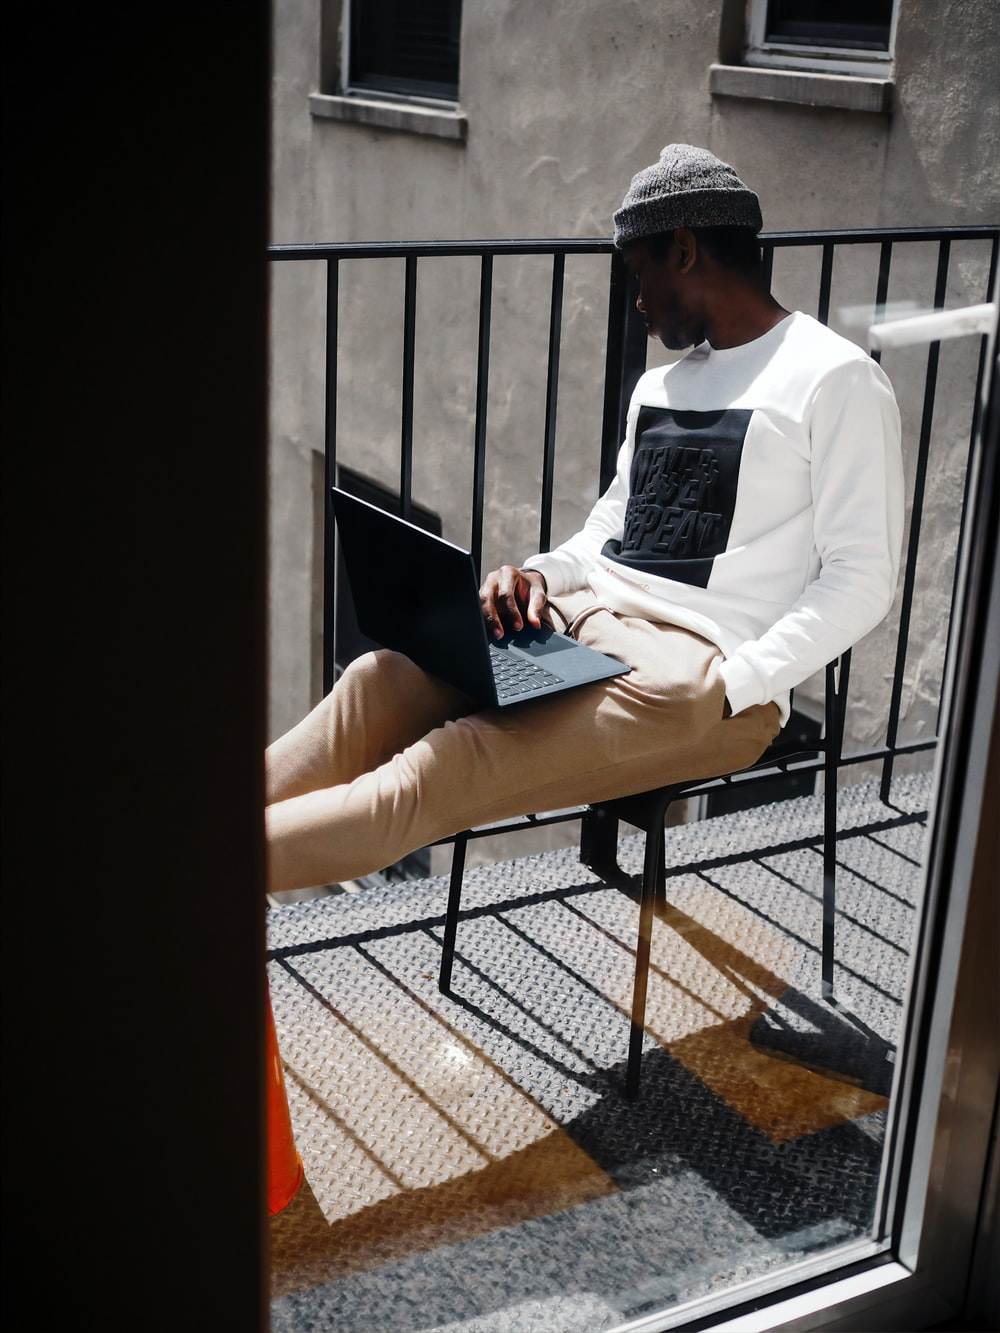 man in white shirt sitting on his balcony working on a cobalt blue microsoft surface laptop